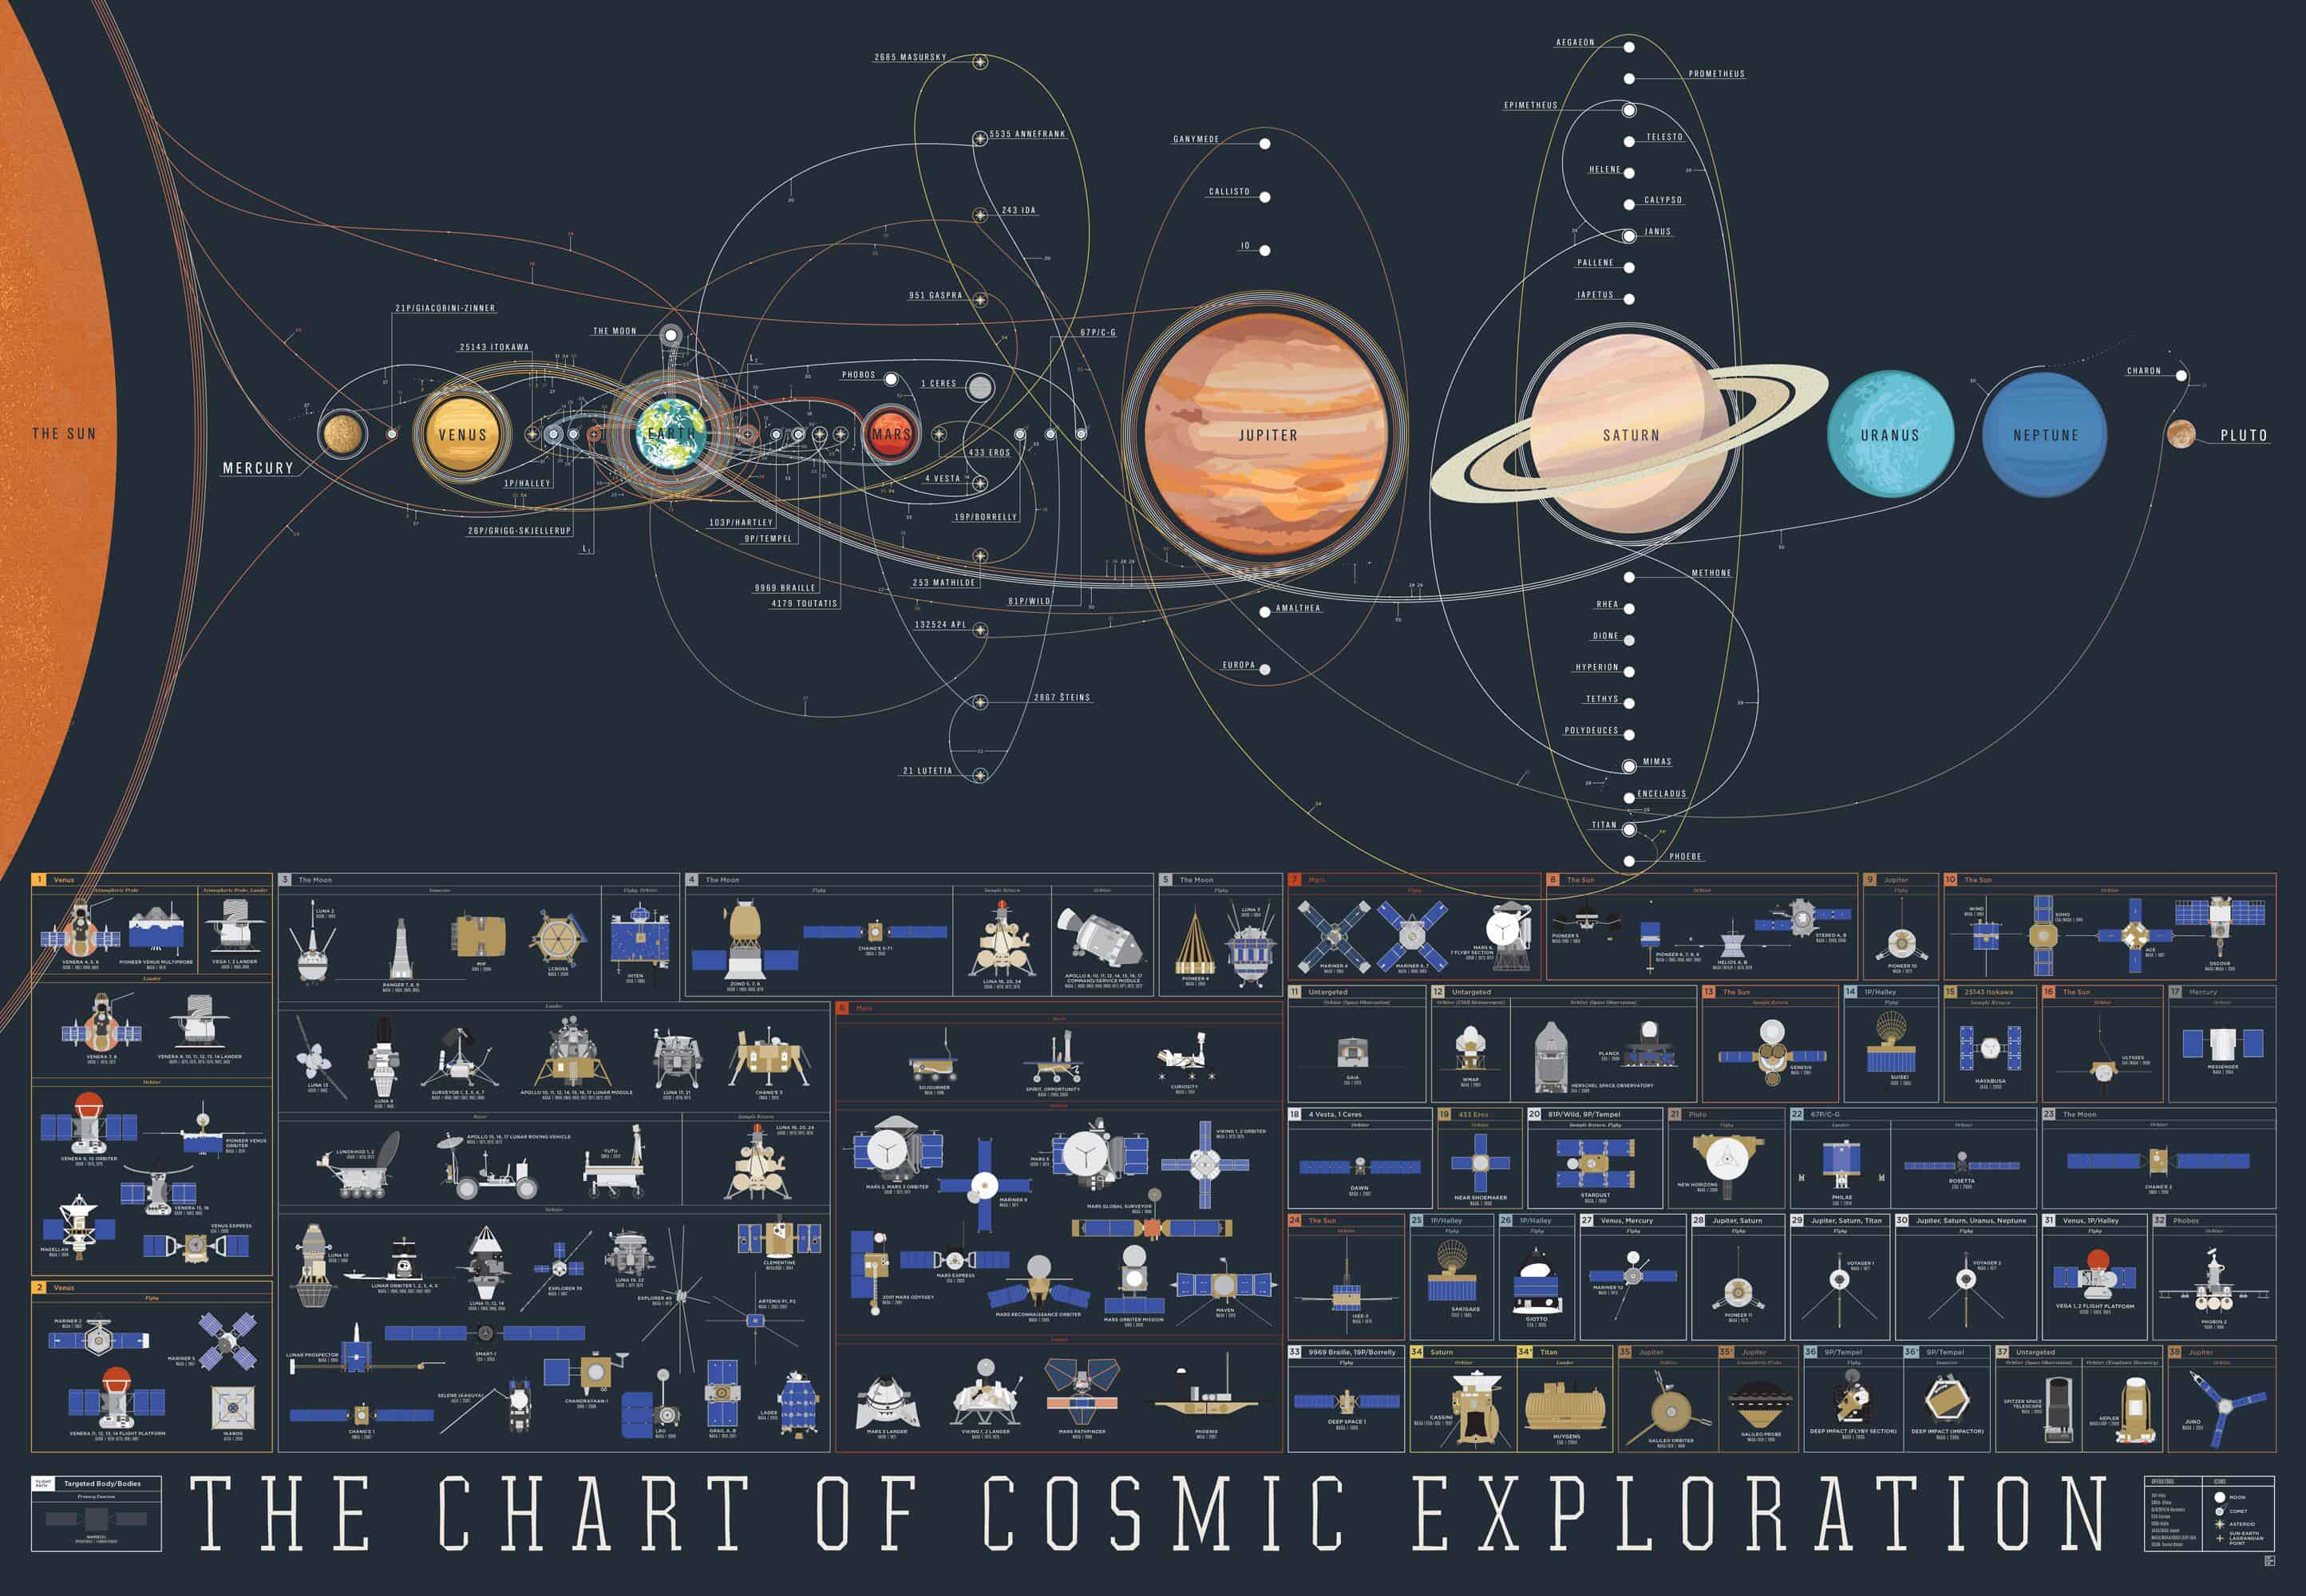 The Chart of Cosmic Exploration Elegantly Details 56 Years of Human Adventures into Space